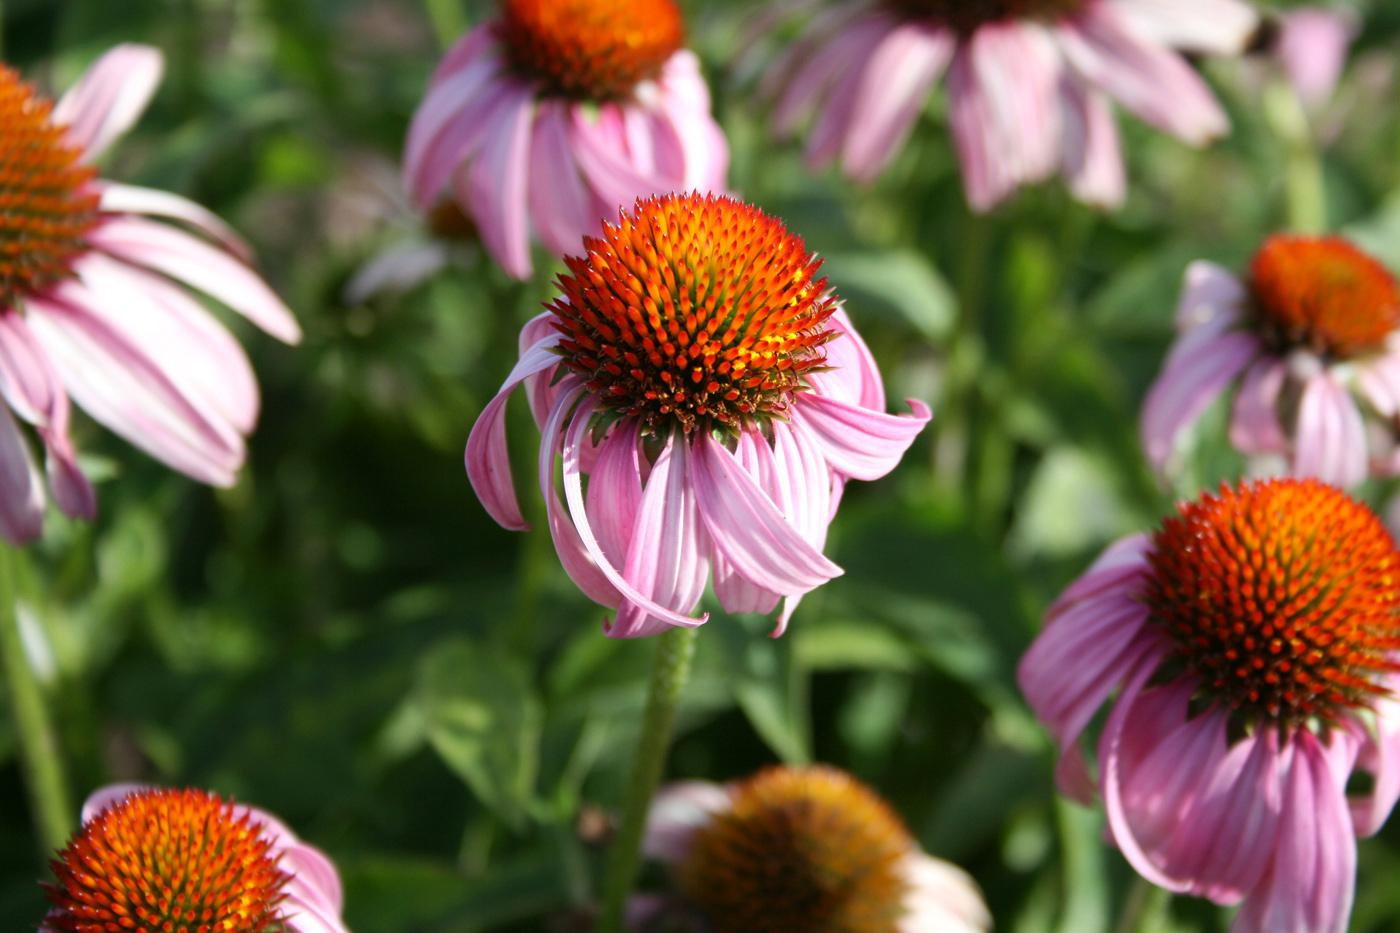 Purple coneflowers, such as this Bright Star, are native perennials that can really make a statement in gardens. (Photo by Gary Bachman)